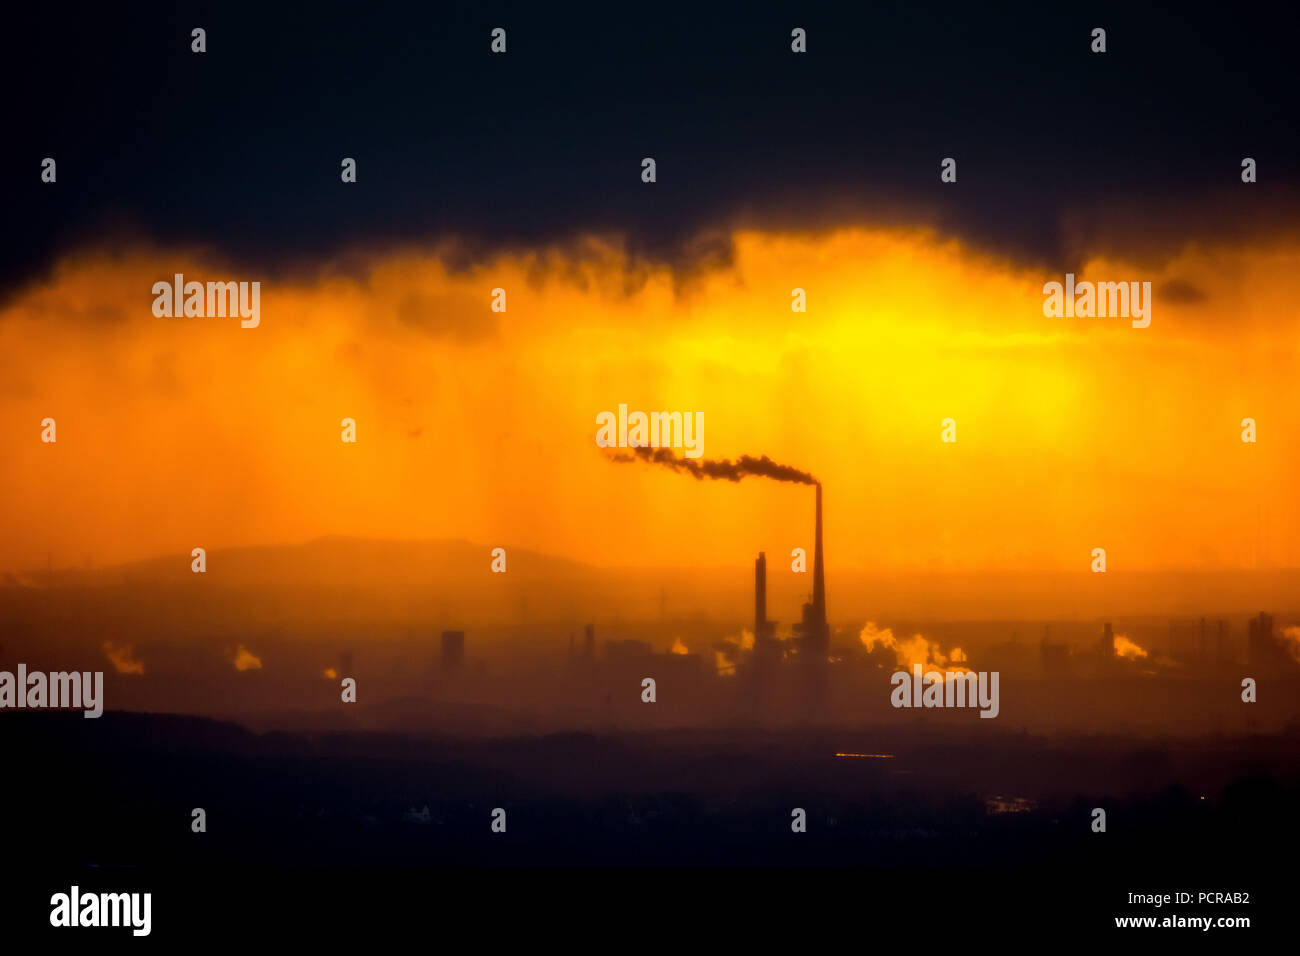 Chemical Park Marl in the back light after a rain shower, evening sun, industrial backdrop, silhouette of the chemical industry, sunset, Marl, Ruhr area, North Rhine-Westphalia, Germany - Stock Image